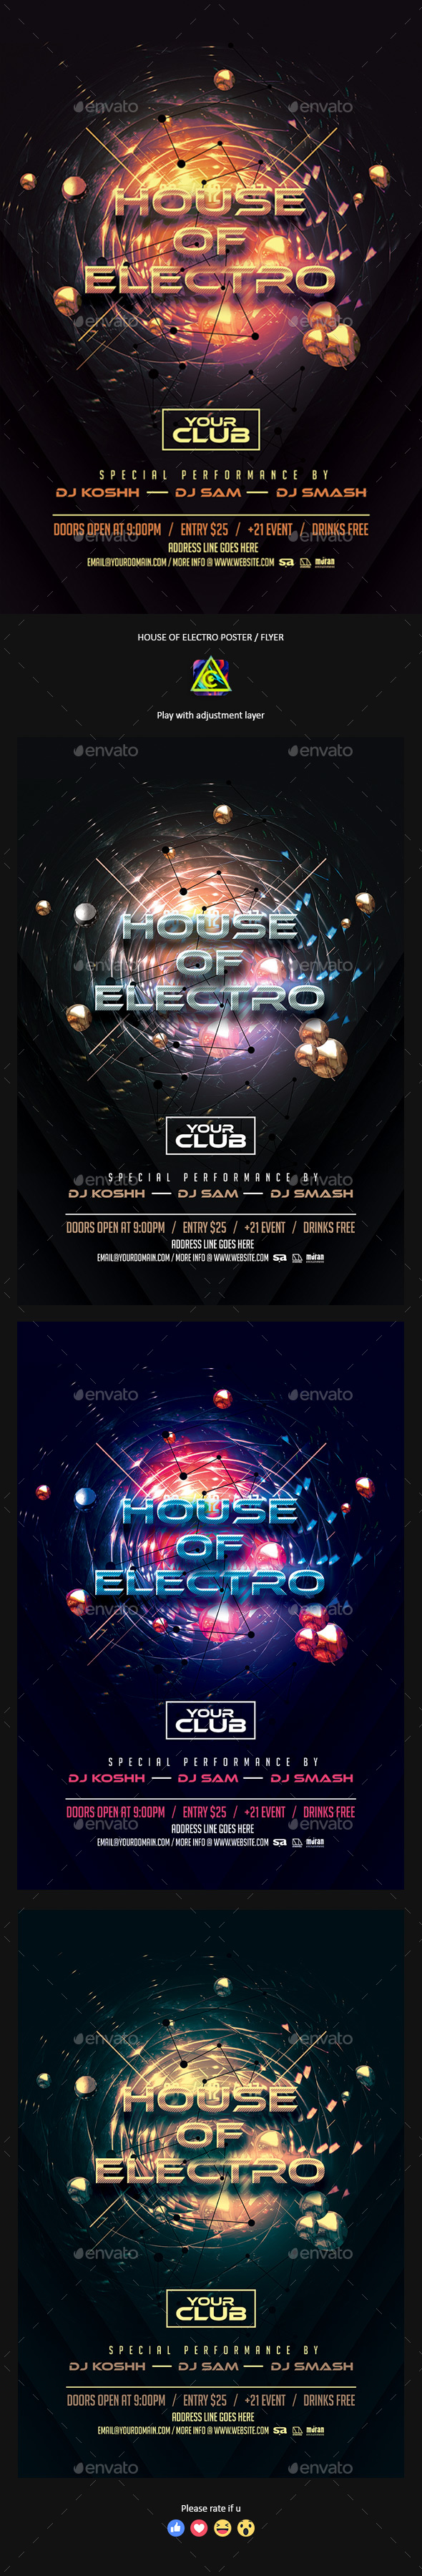 House of Electro Poster / Flyer - Clubs & Parties Events